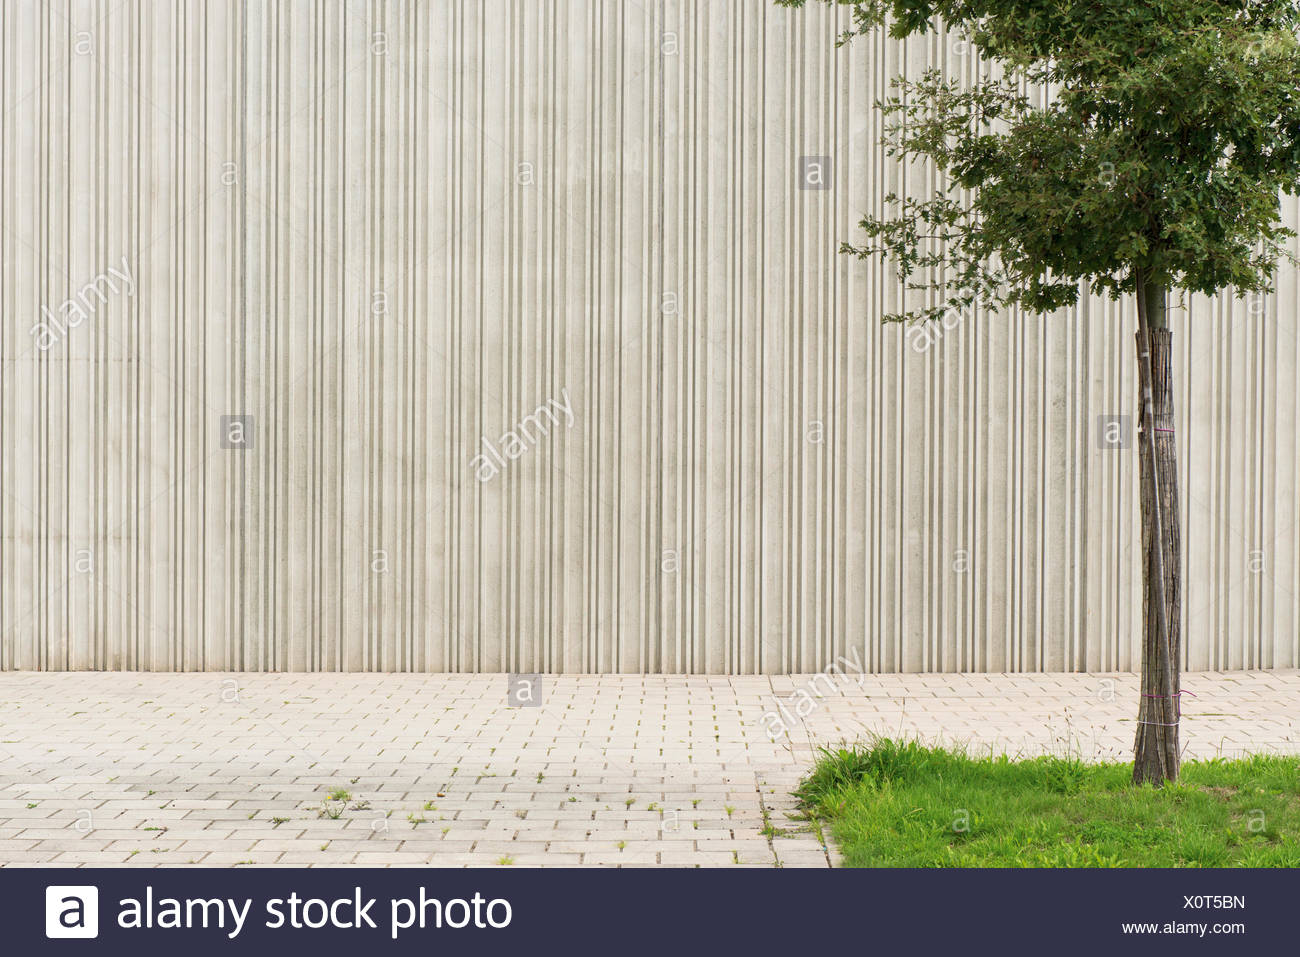 Germany, Monchengladbach, Tree in front of concrete wall - Stock Image